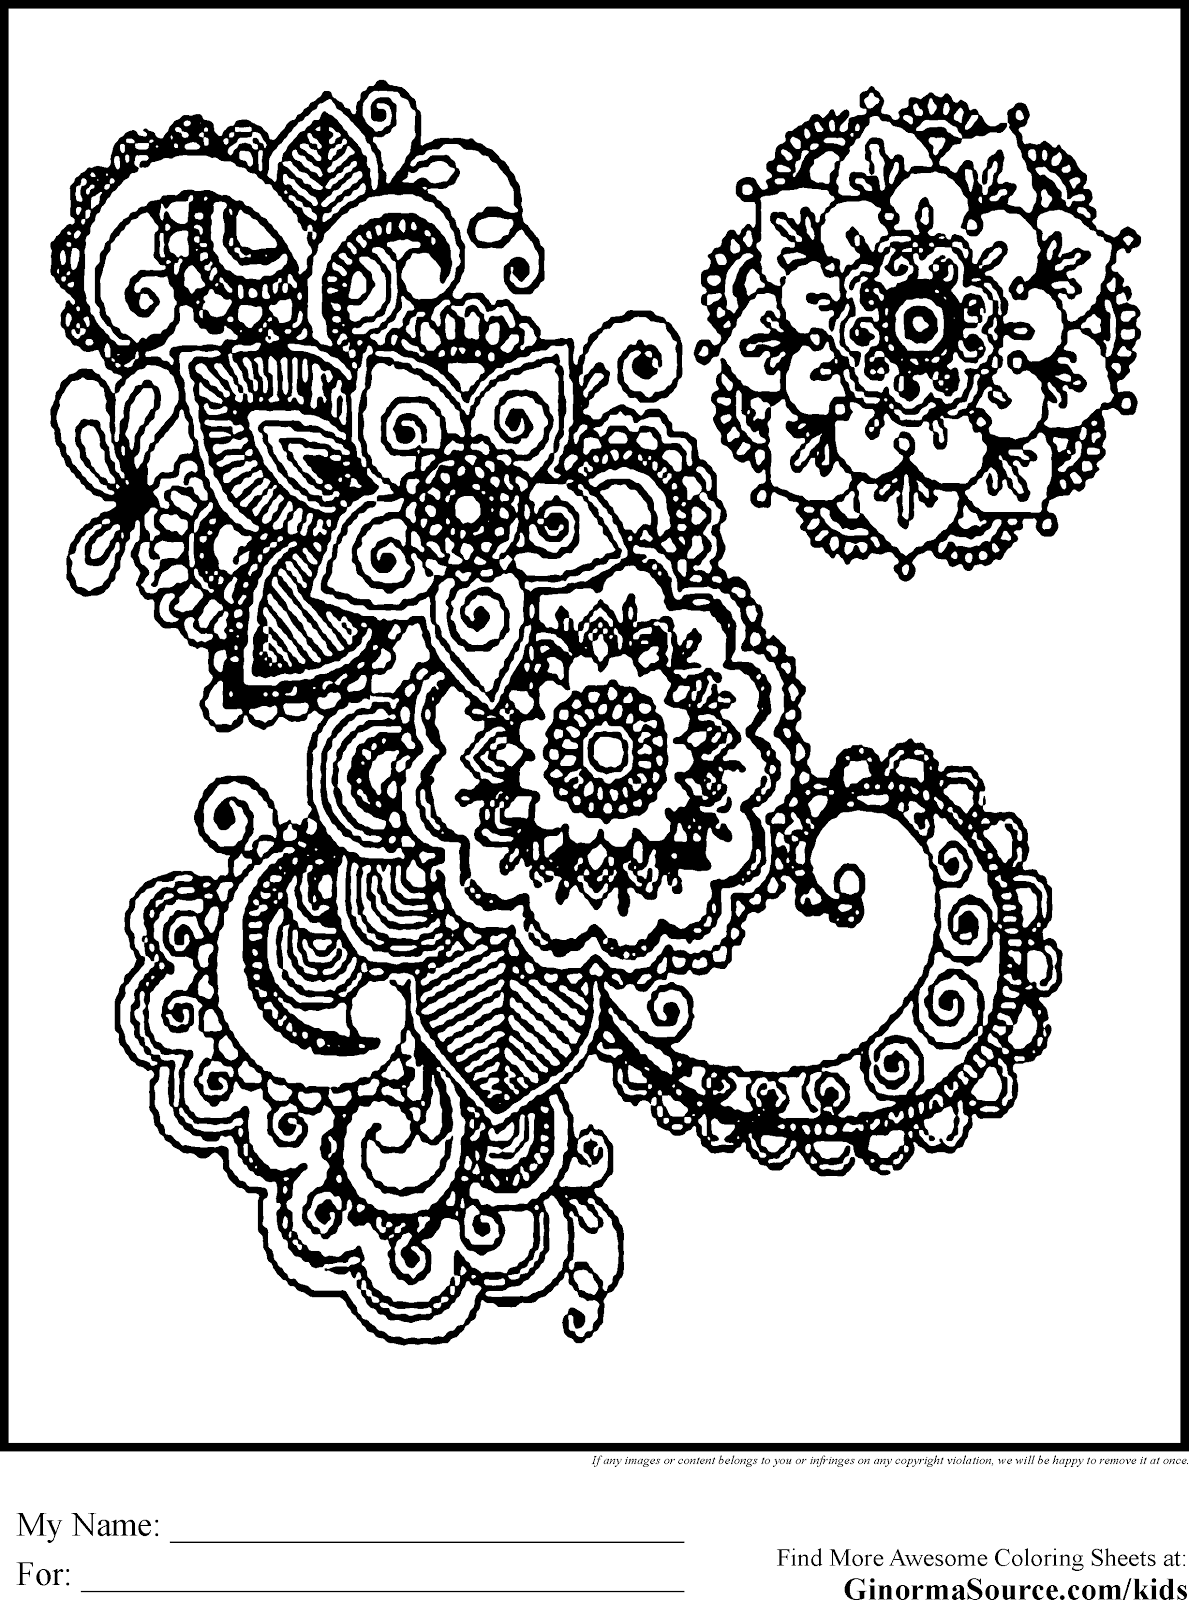 coloring games for adults 99 best images about coloring for adults on pinterest adults games coloring for